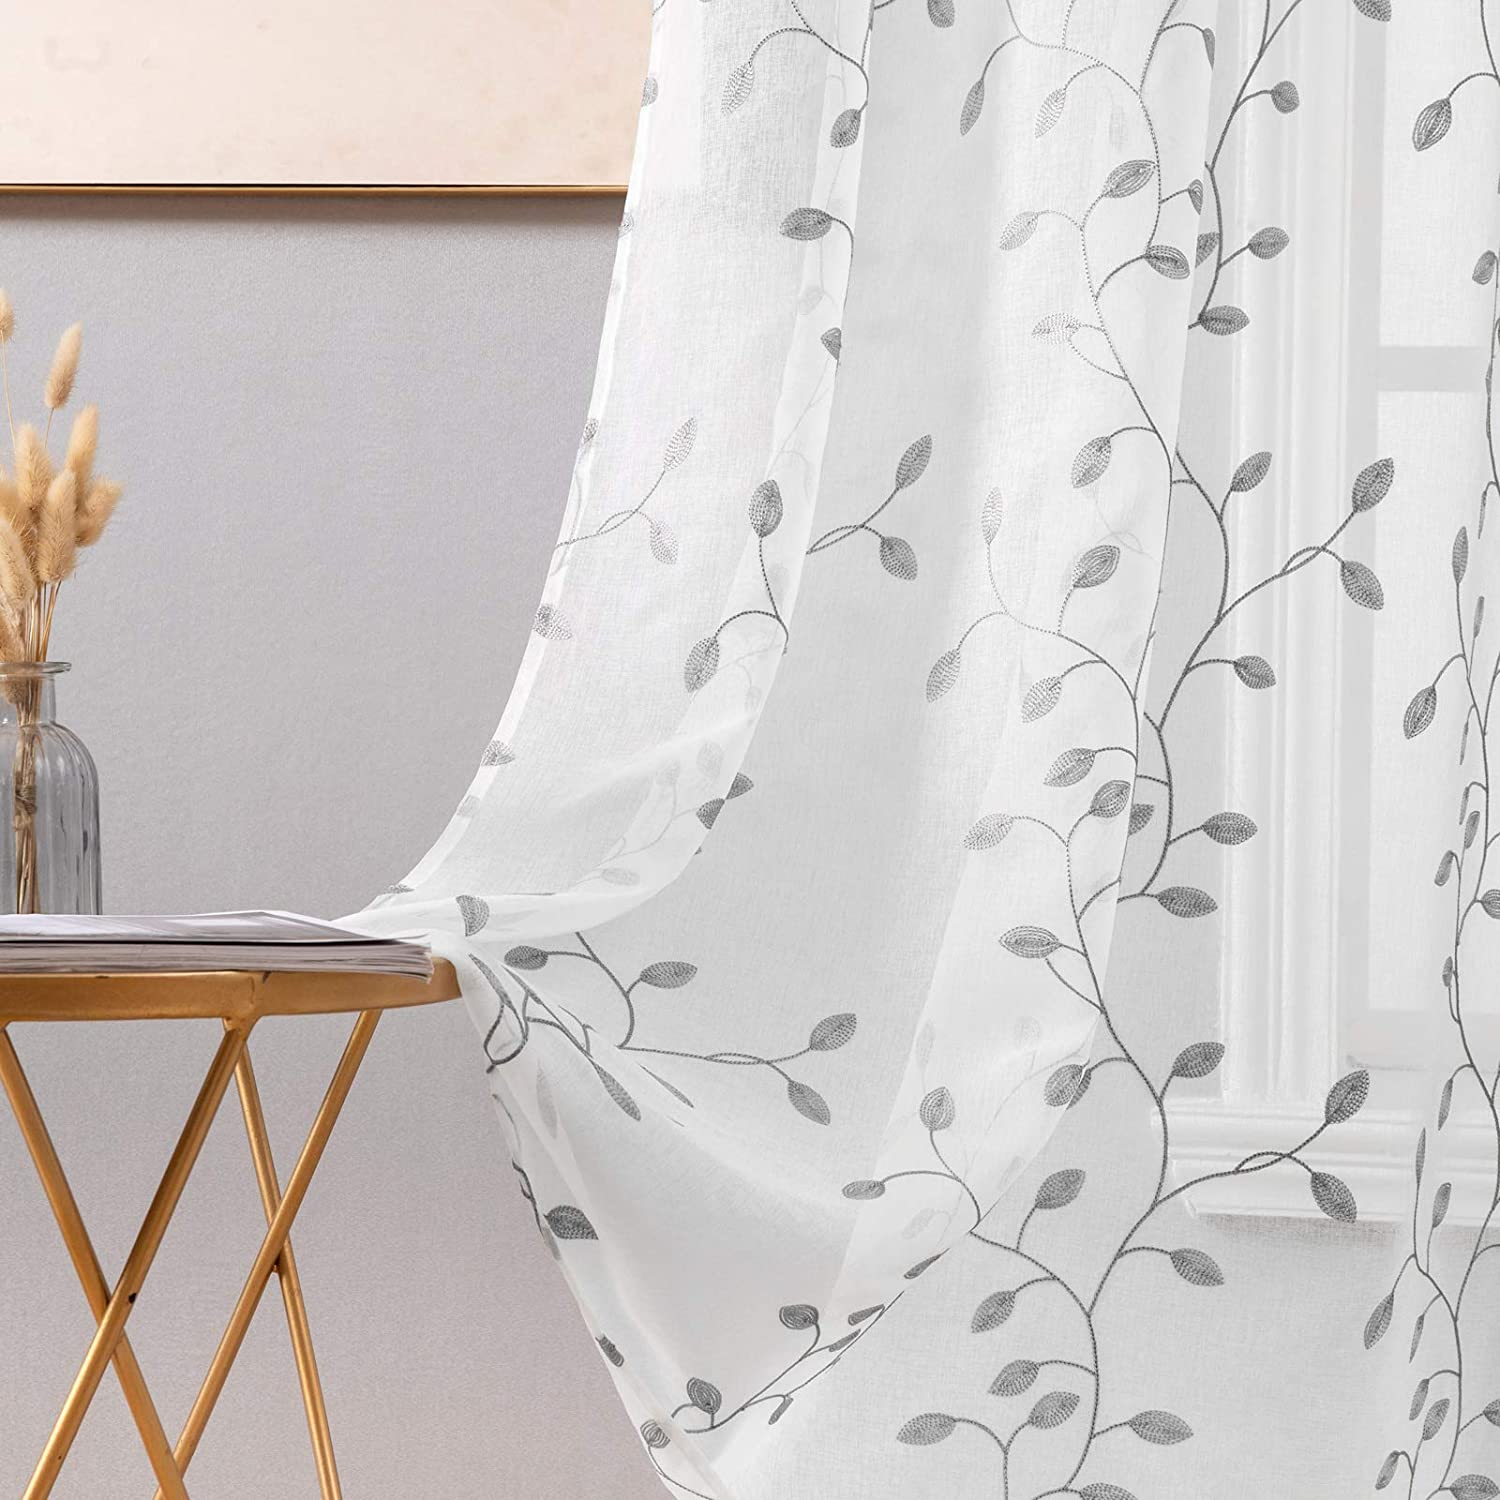 Miulee Decorative Sheer Curtains With Embroidered Leaf Pattern For Living Room Elegant Grommet Embroidery Window Voile Bedroom Drape 2 Panels 54 X 96 Inches Grey Kitchen Dining